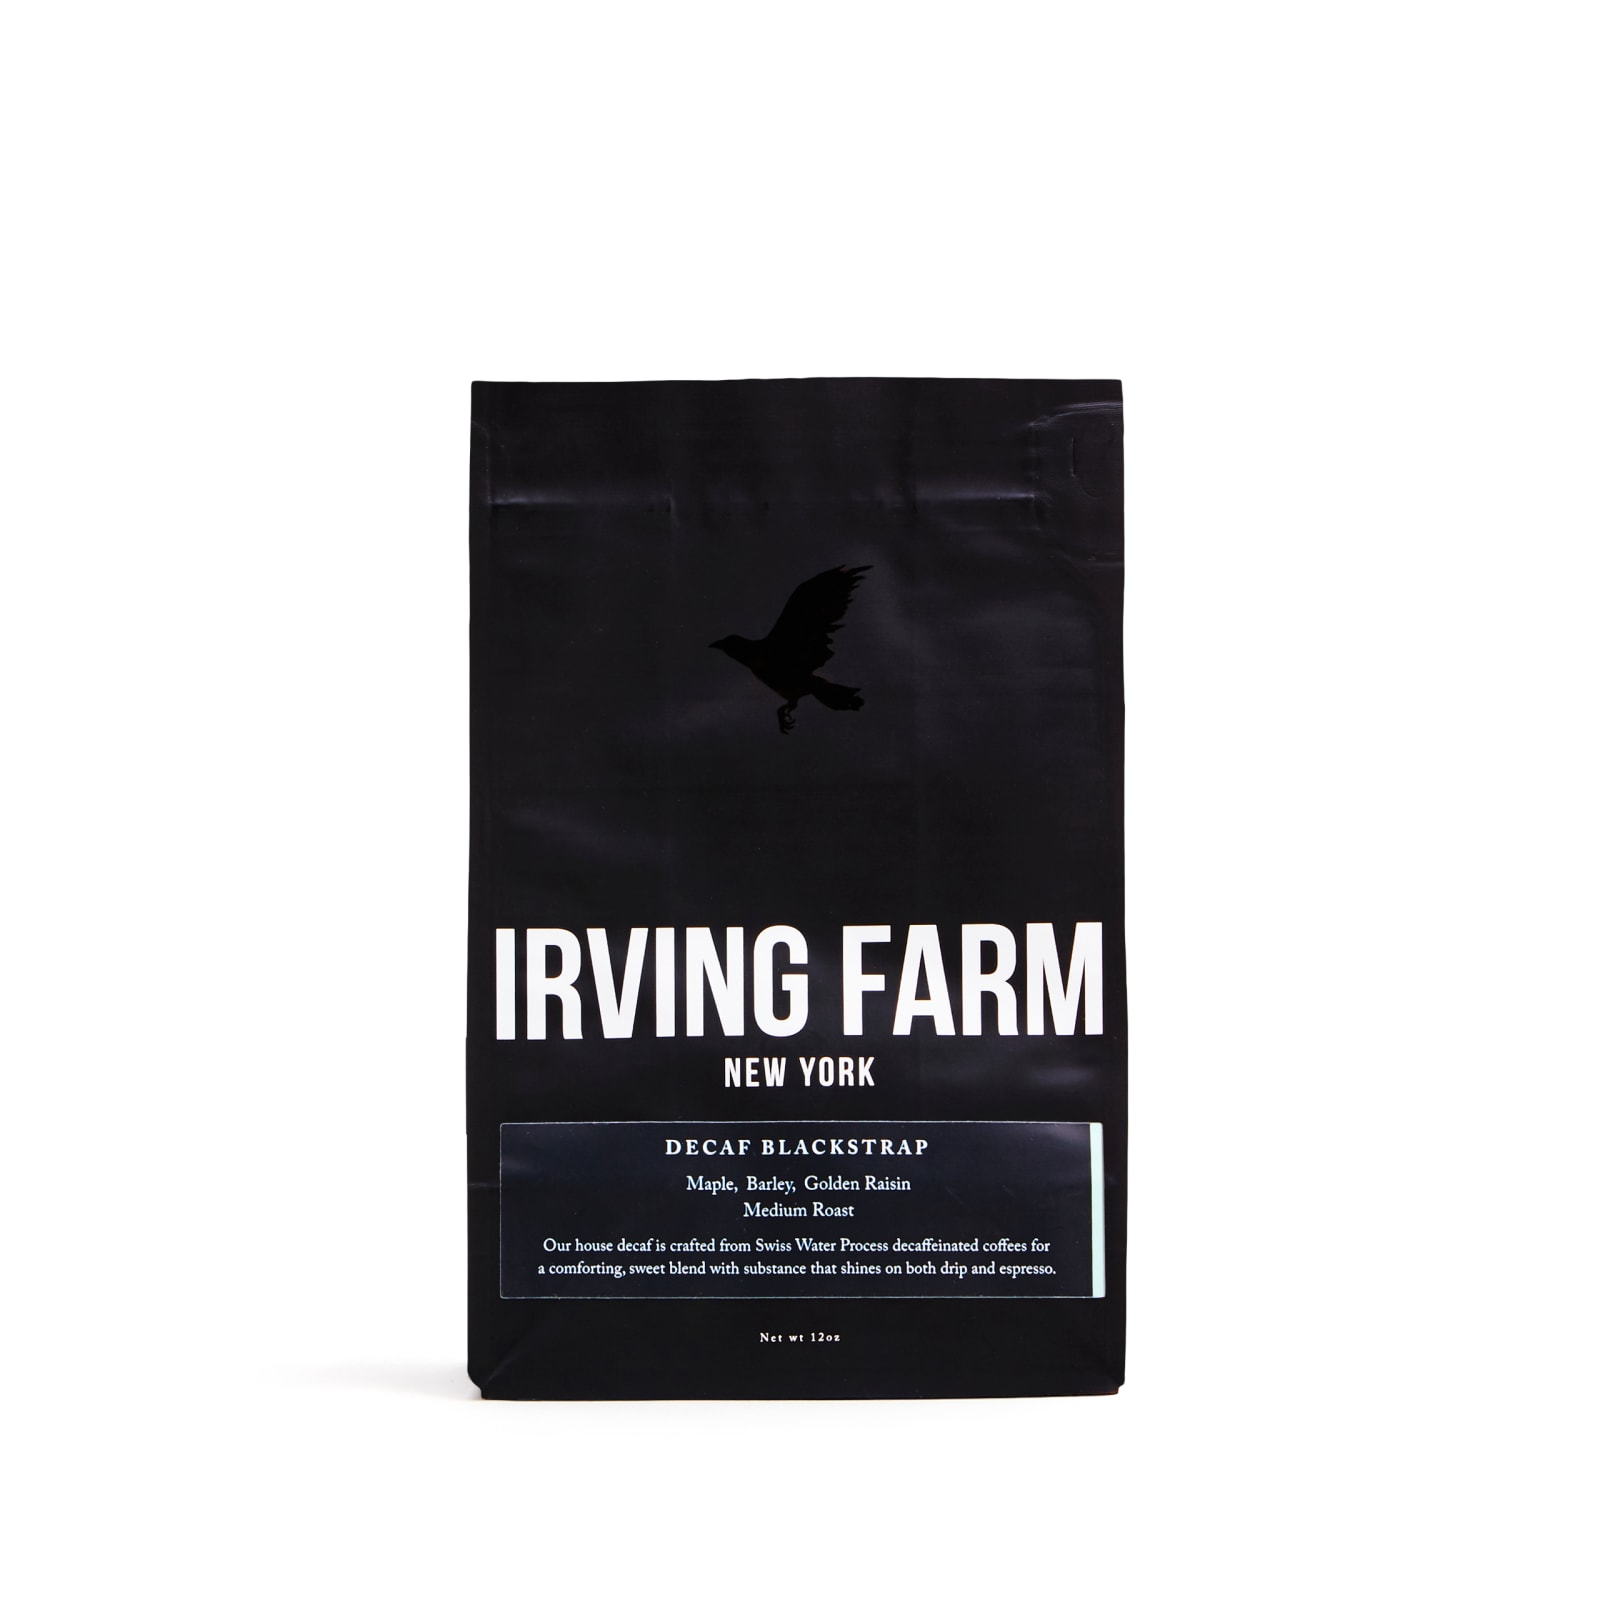 Irving Farm Decaf Blackstrap